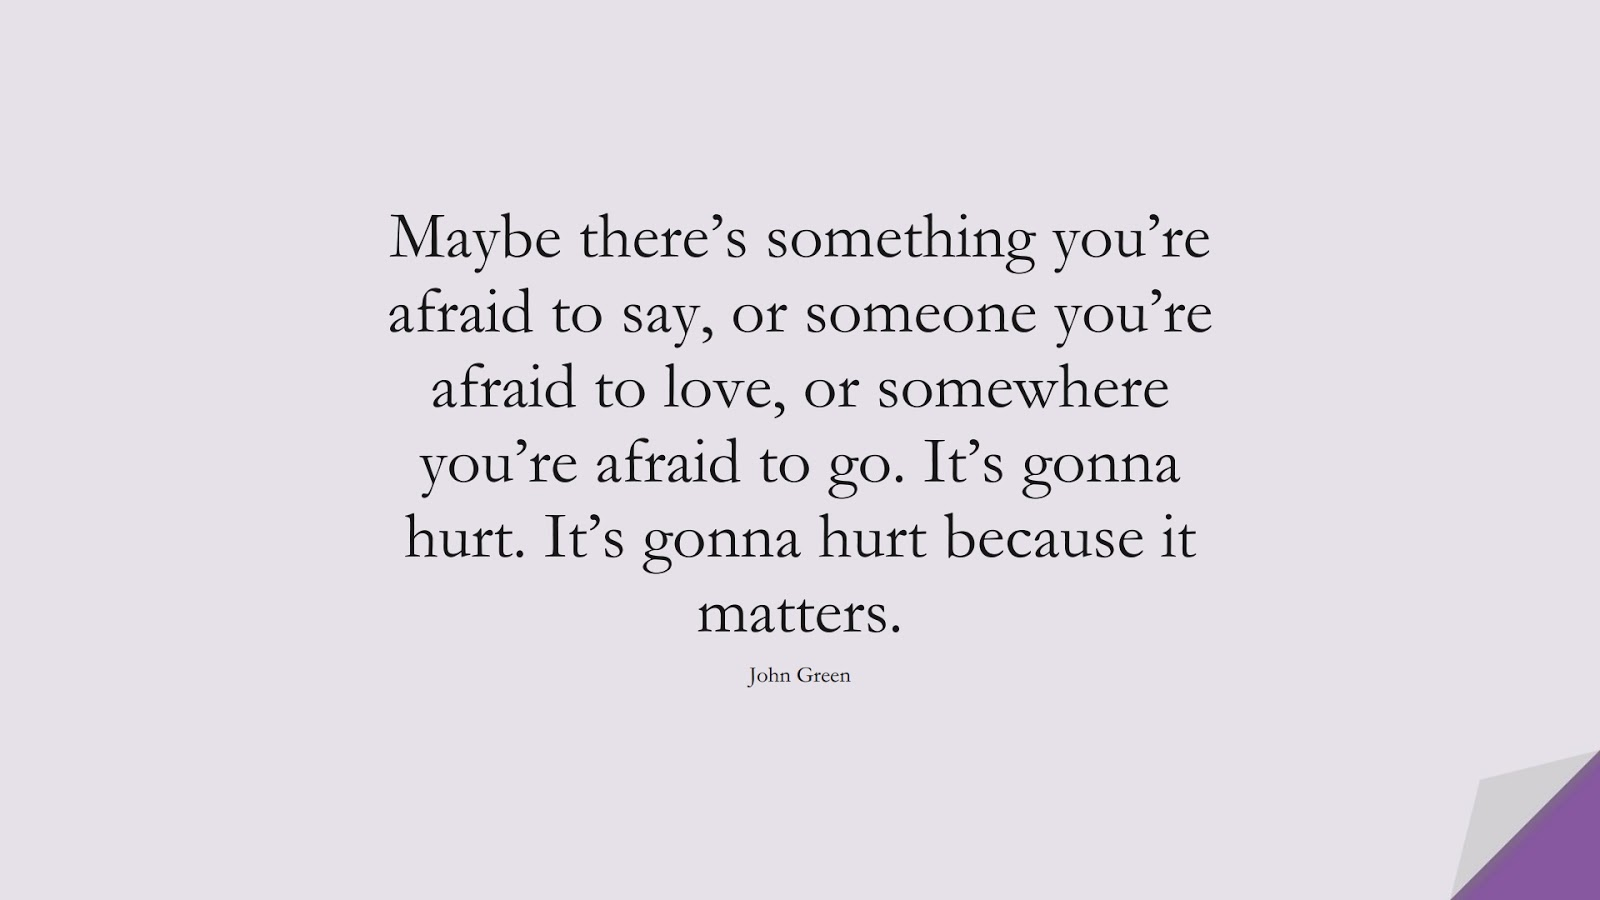 Maybe there's something you're afraid to say, or someone you're afraid to love, or somewhere you're afraid to go. It's gonna hurt. It's gonna hurt because it matters. (John Green);  #FearQuotes